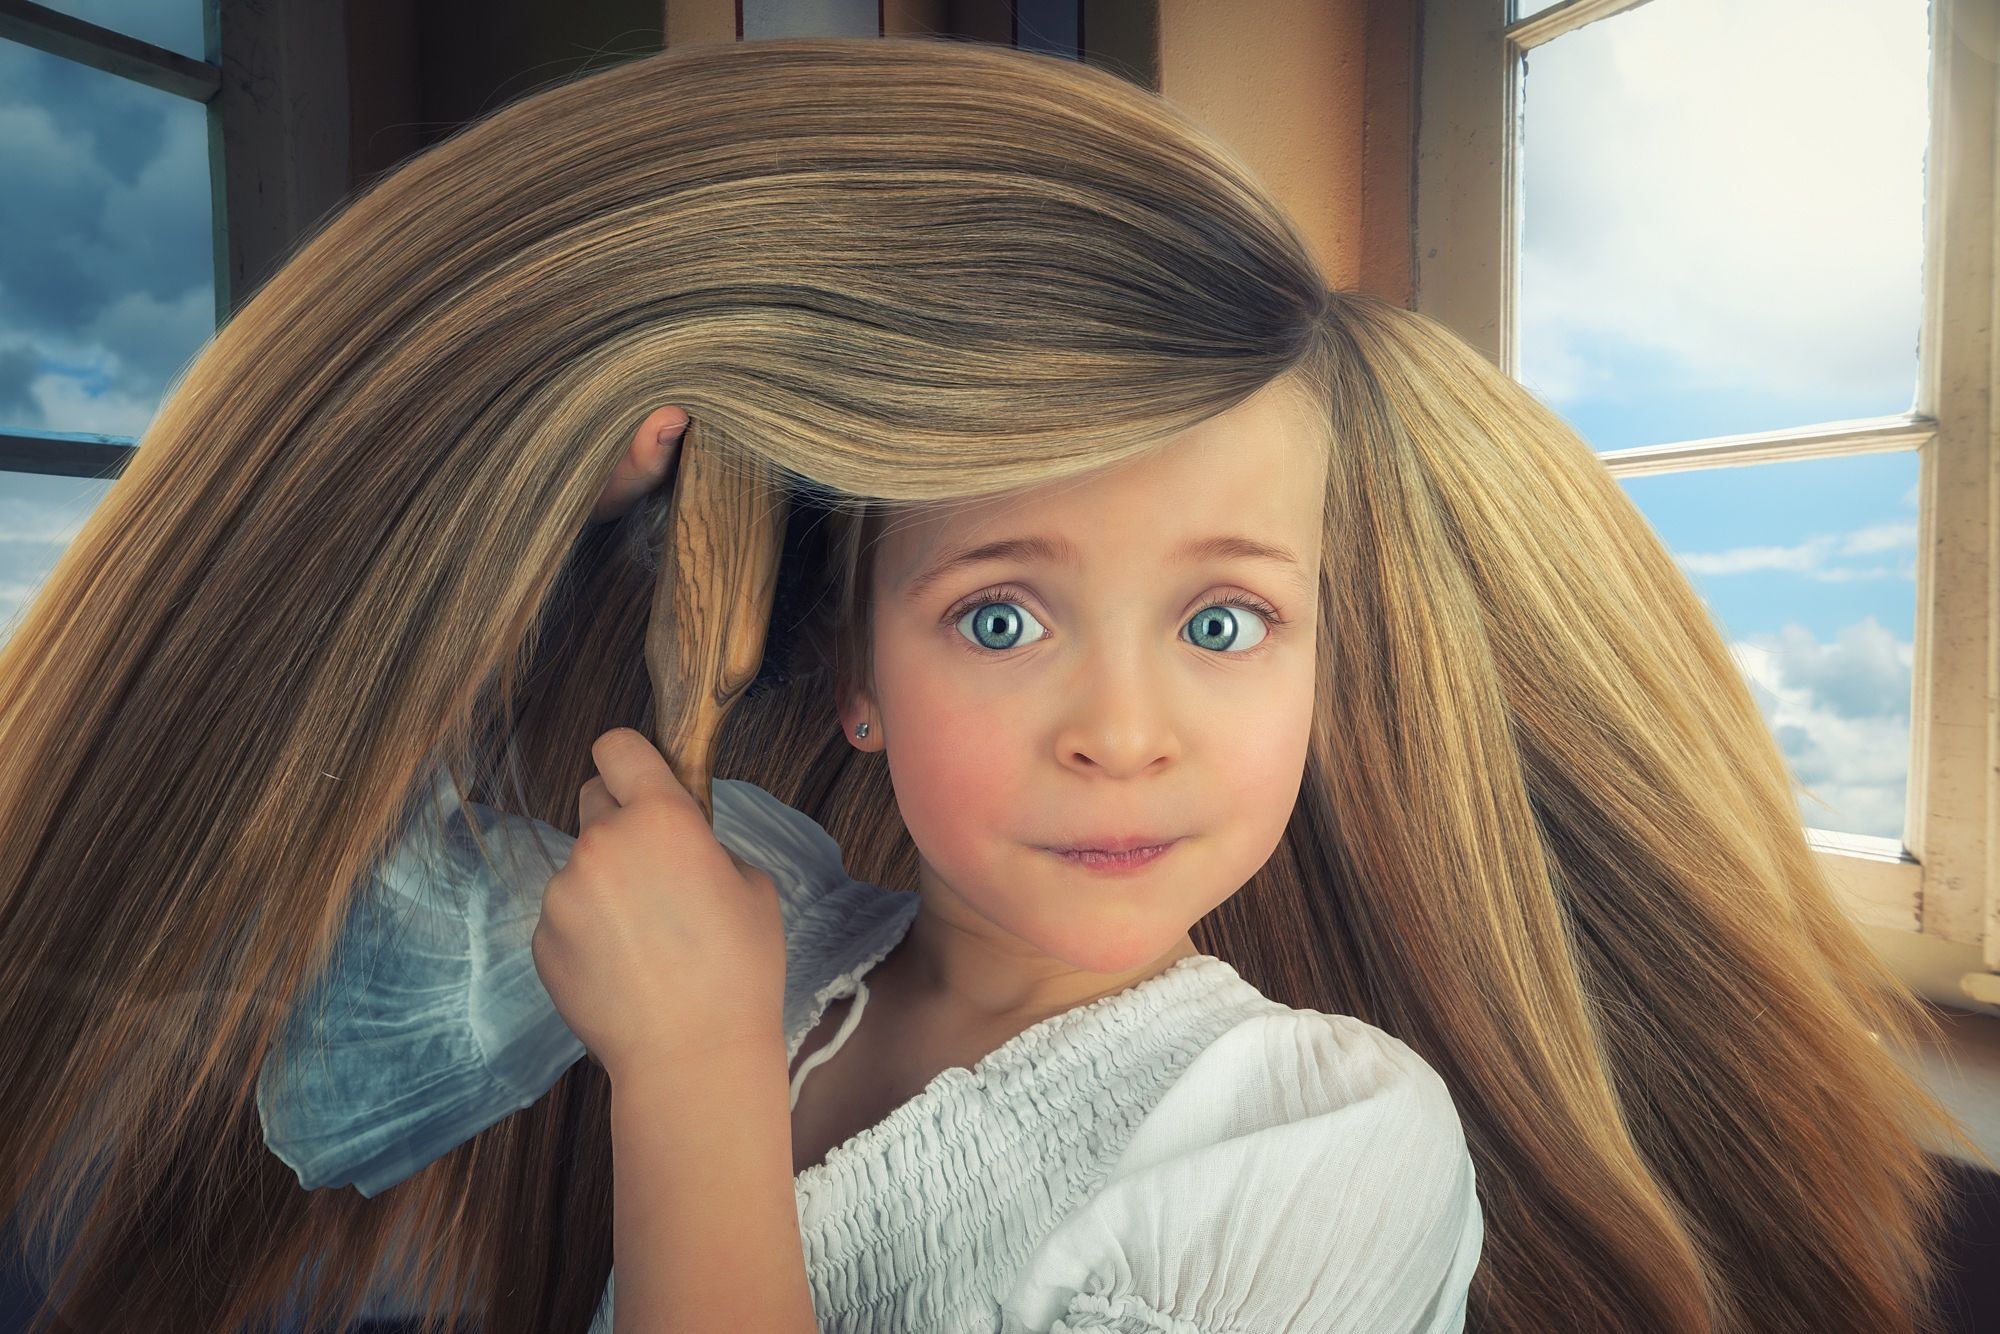 Photograph Rapunzel S Bad Hair Day By John Wilhelm Is A